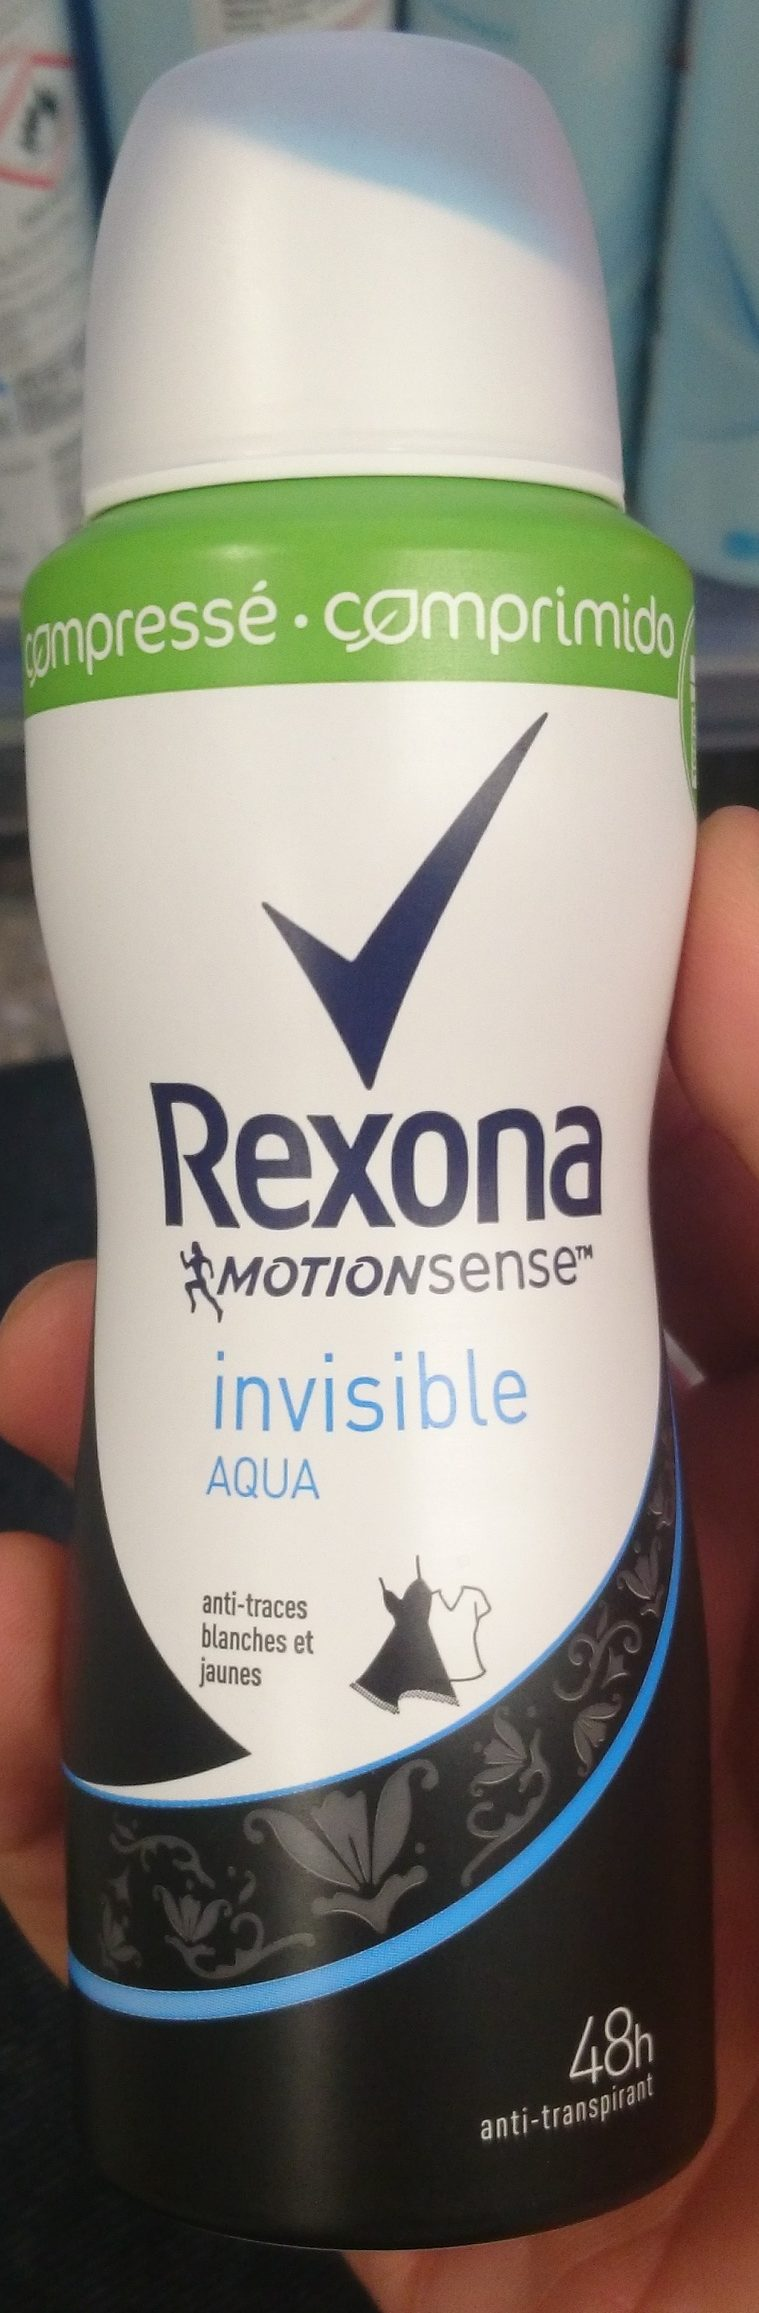 Motionsense Invisible Aqua - Produit